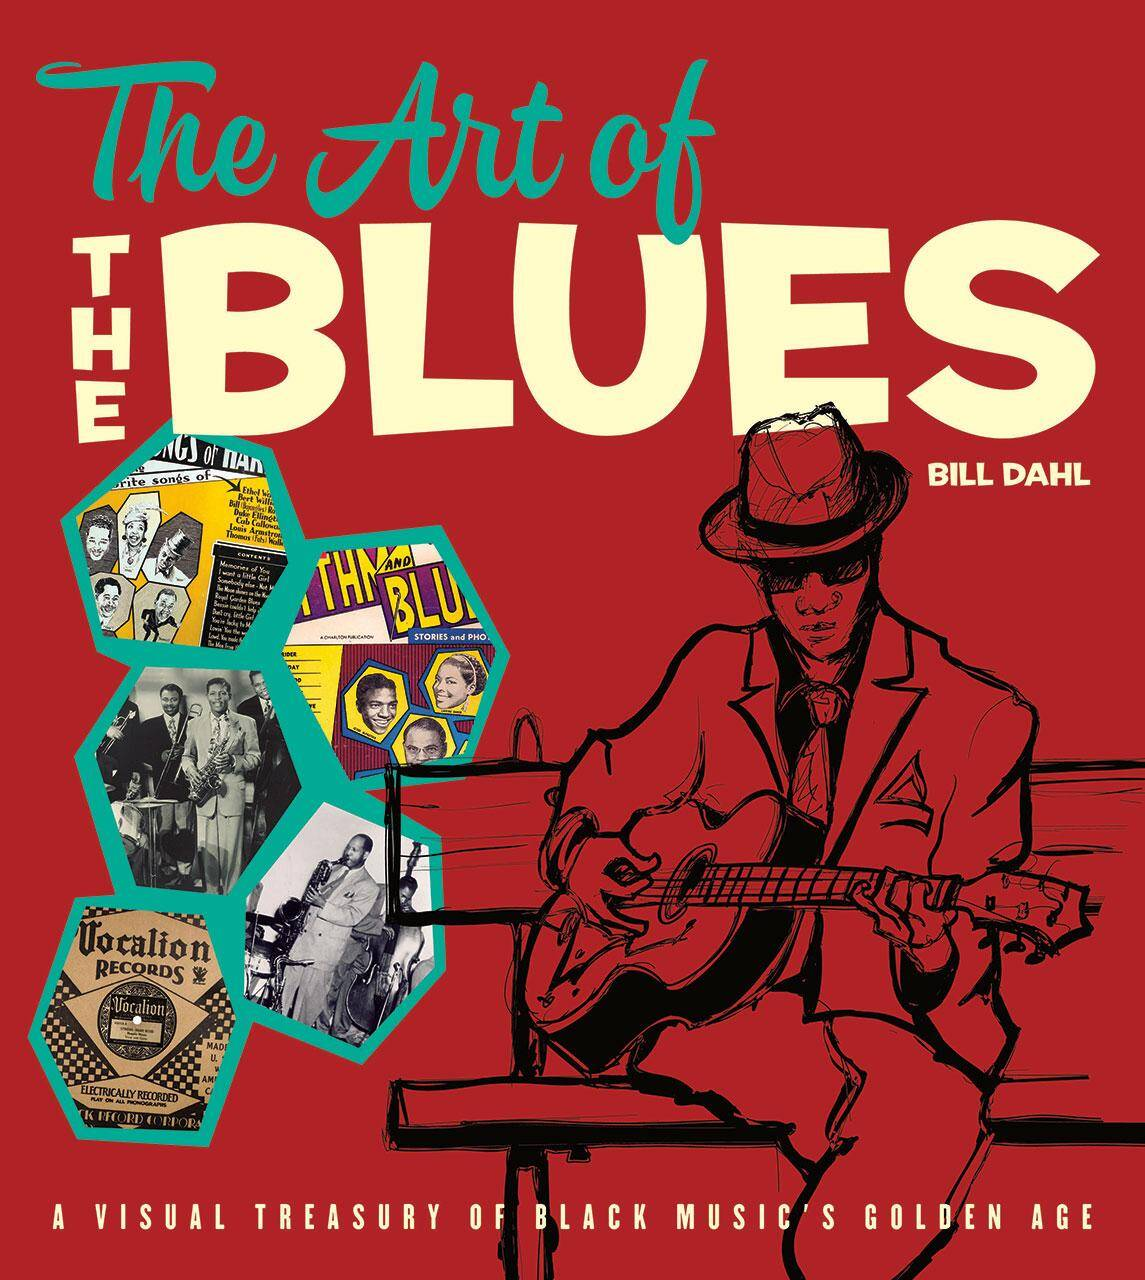 The Art of the Blues: A Treasury of Black Music's Golden Age